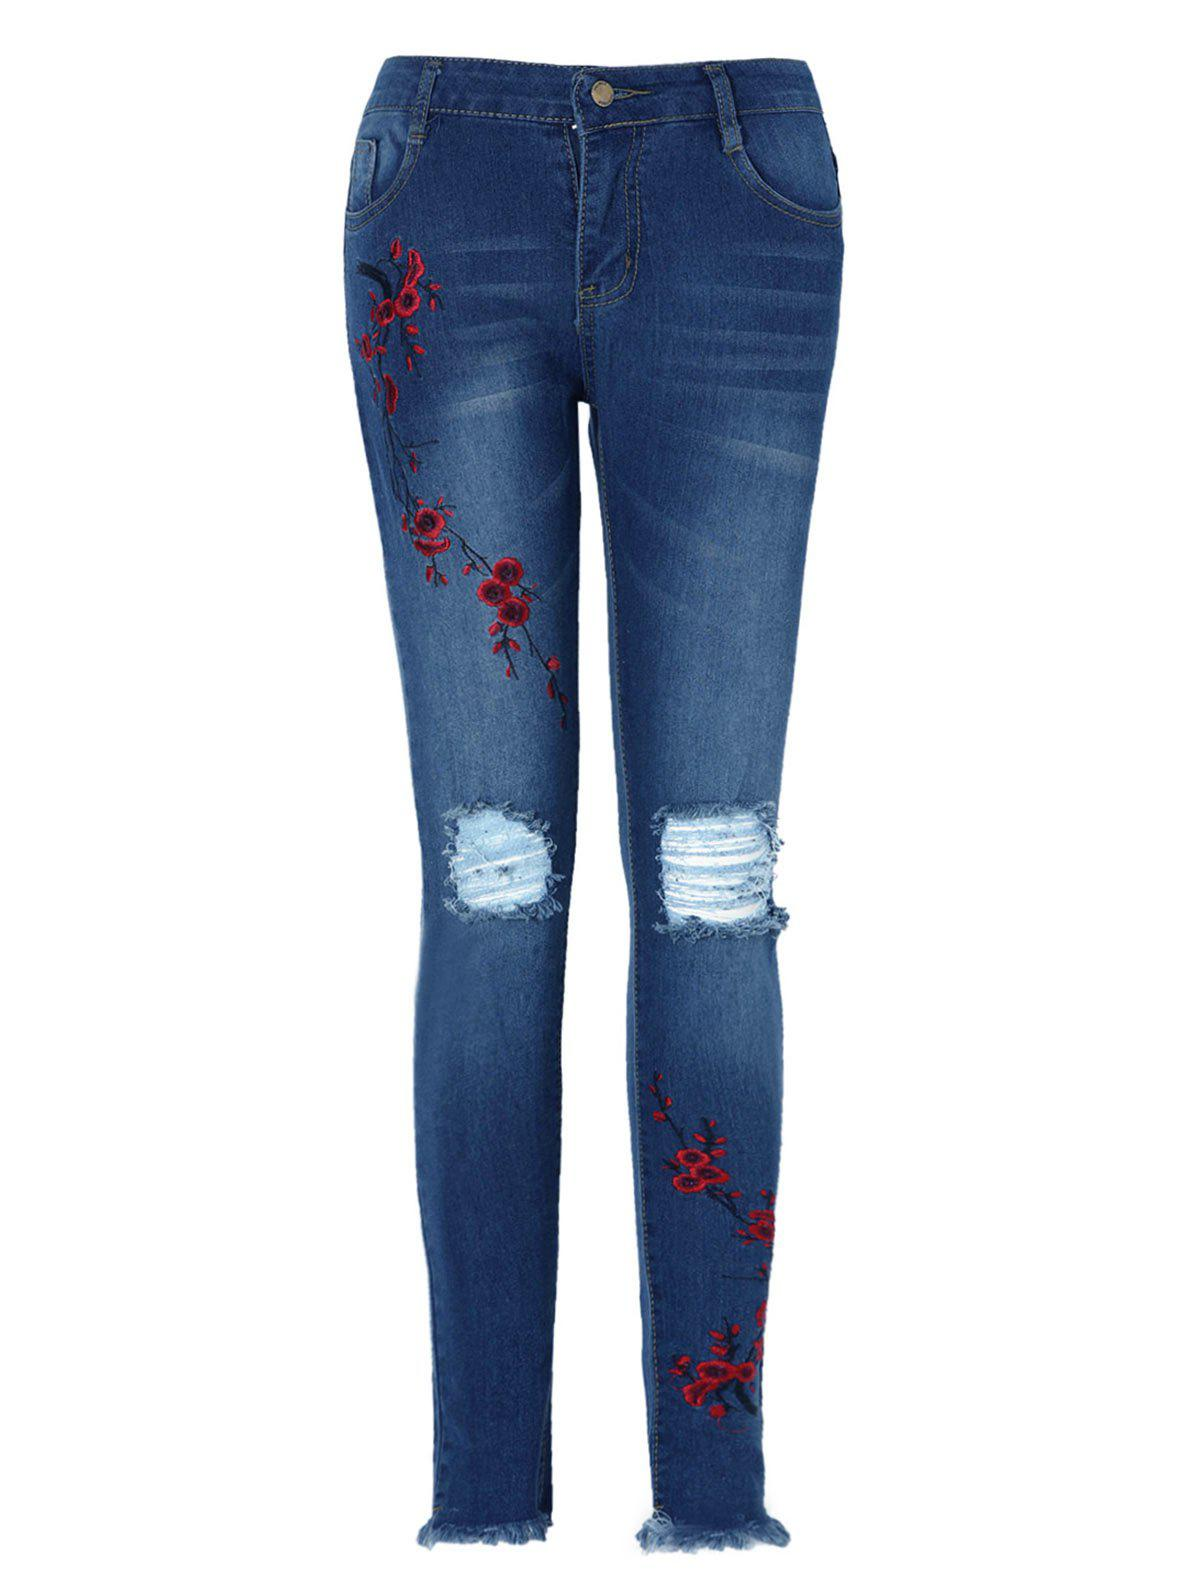 Latest Floral Embroidered Ripped Jeans